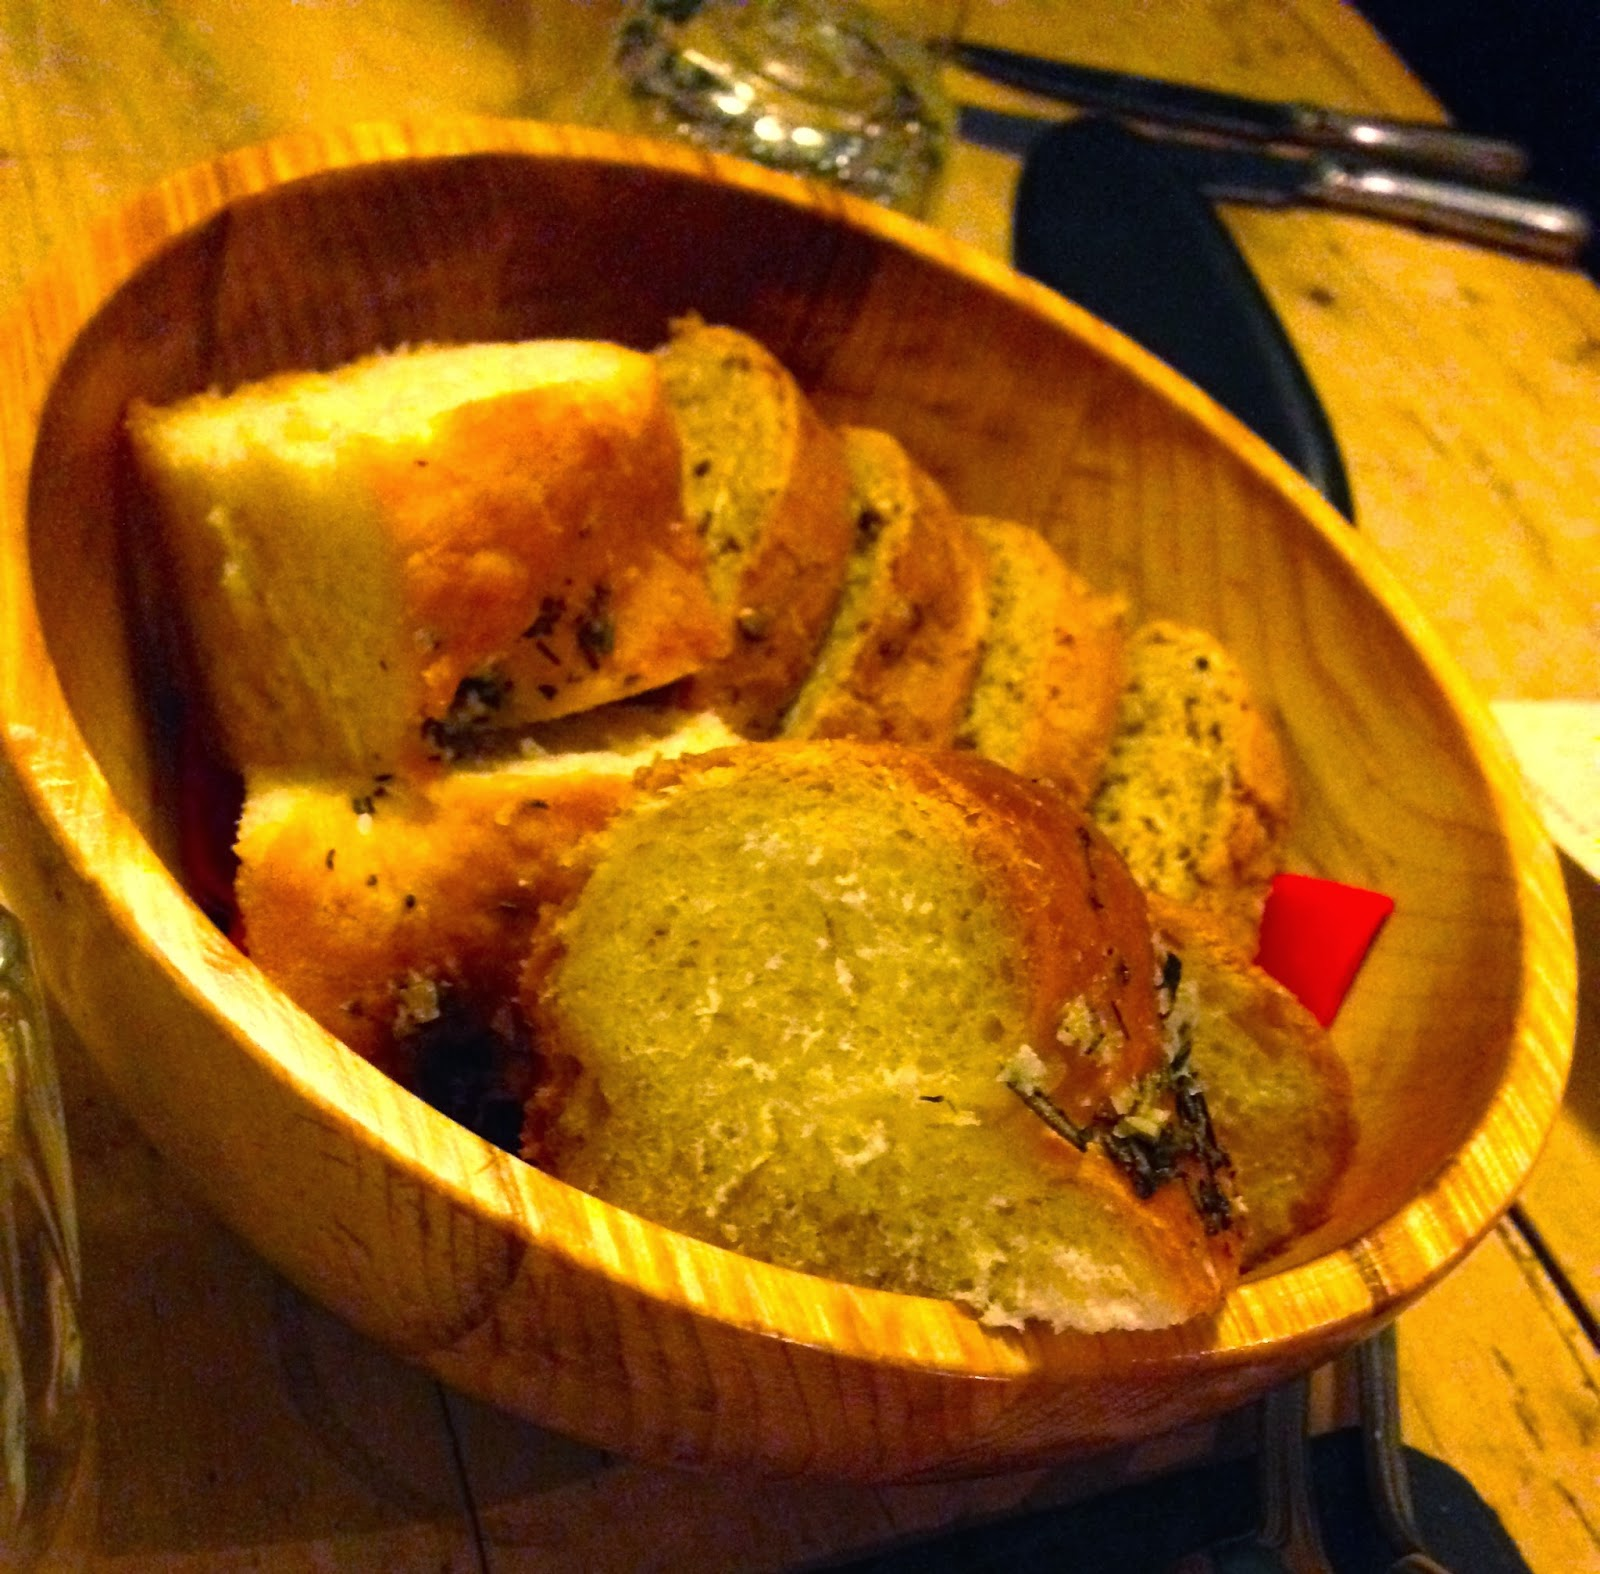 Bread at Y Polyn